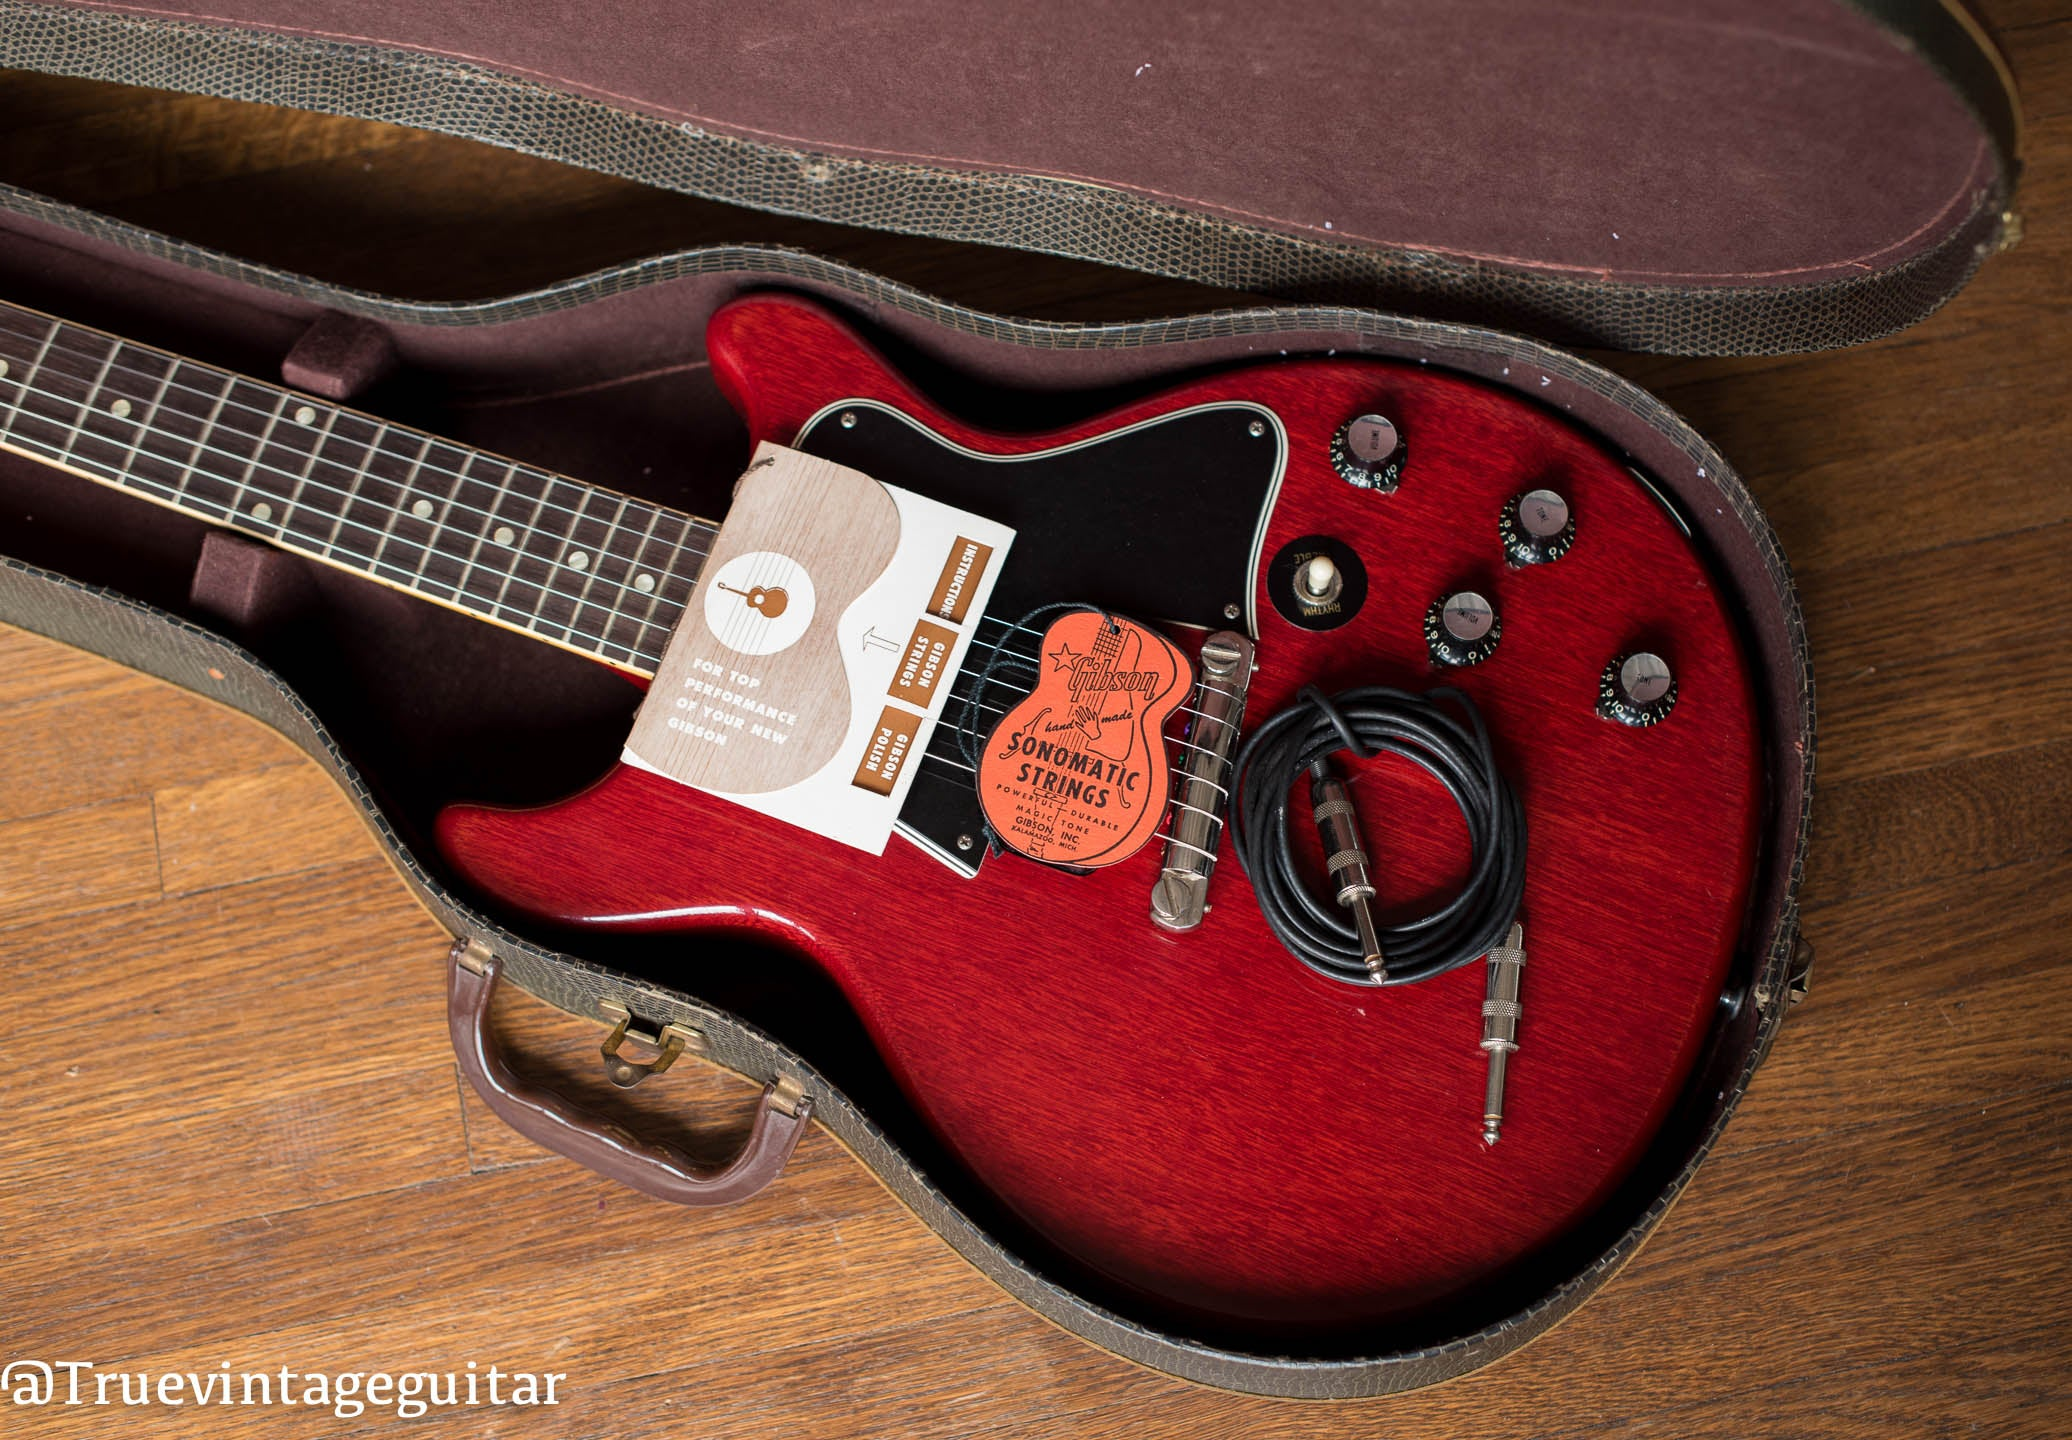 Vintage Gibson SG Special vintage electric guitar